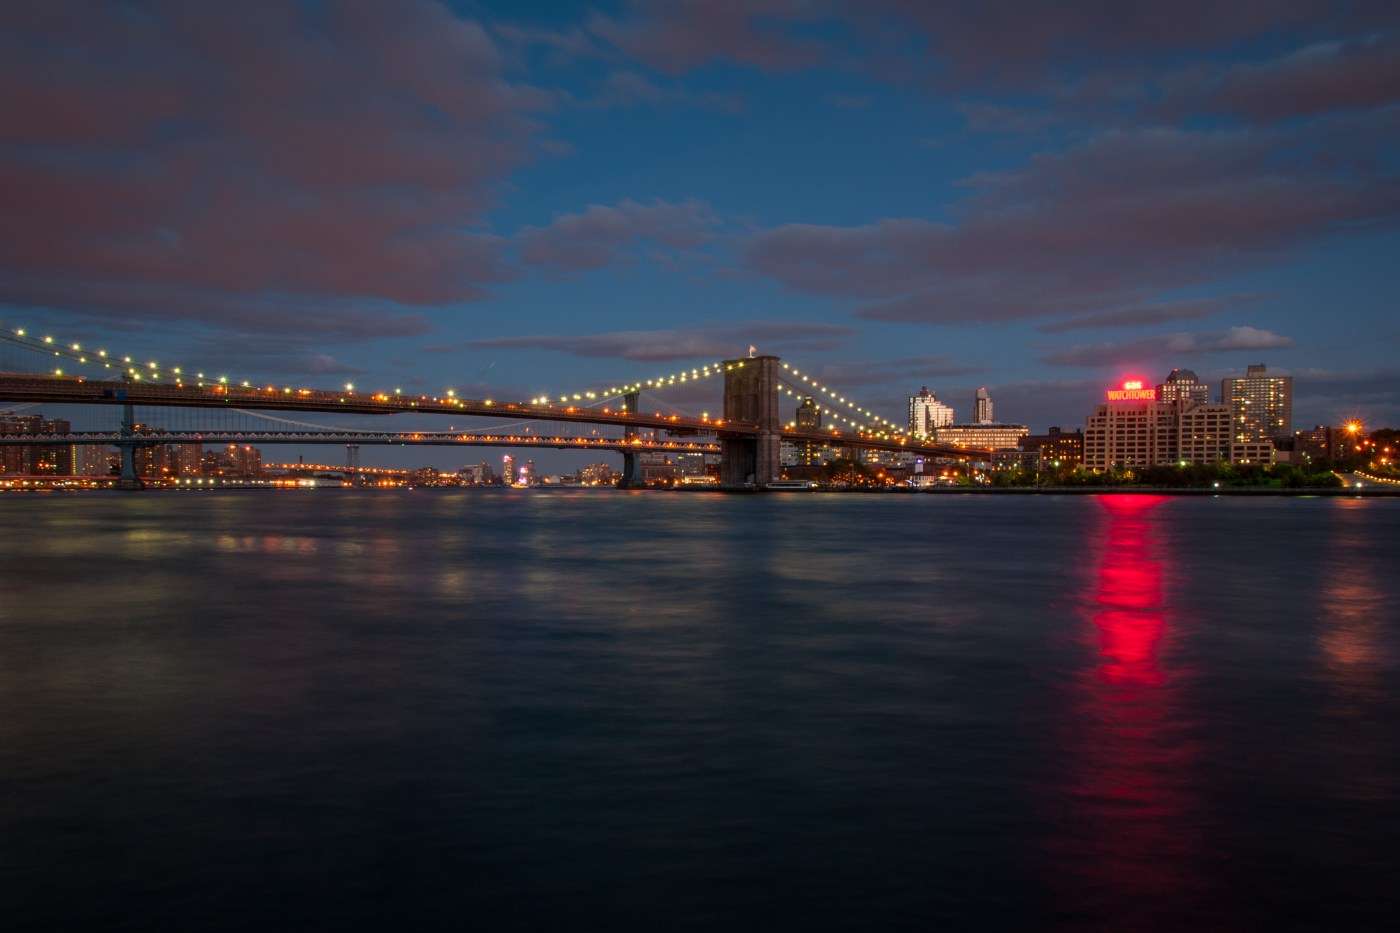 Bridges over the East River